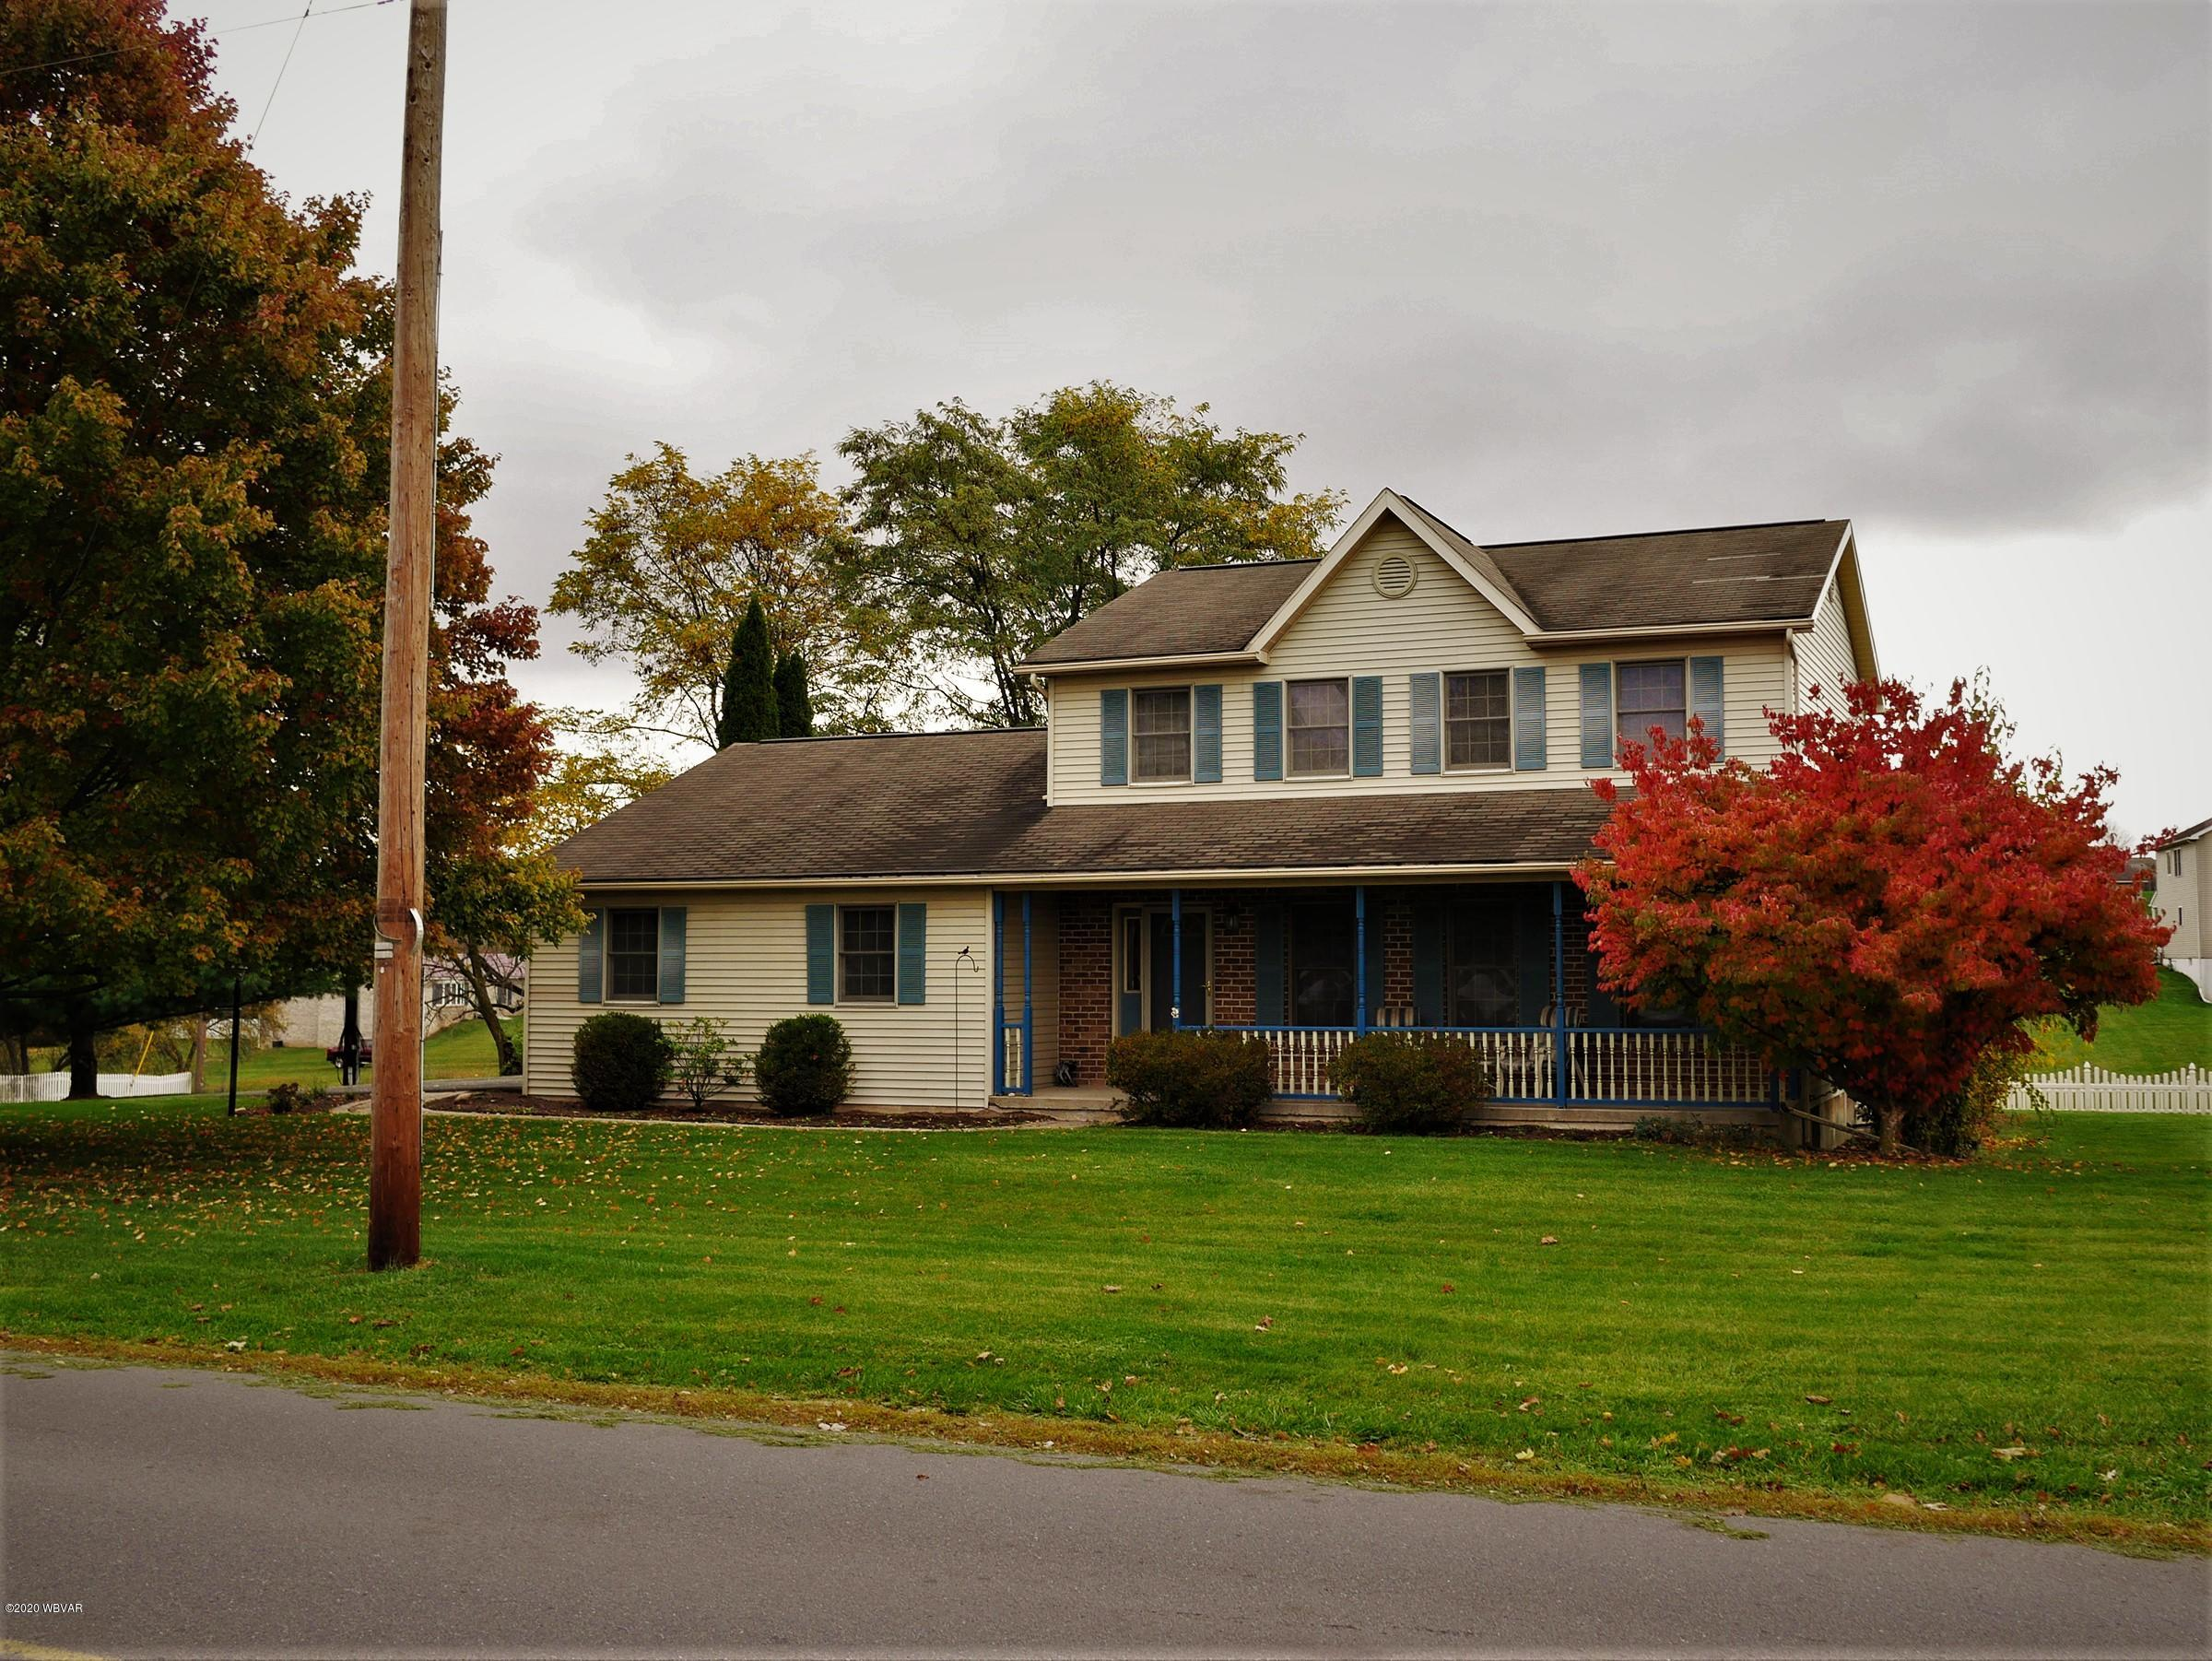 455 GOLF COURSE ROAD, Milton, PA 17847, 3 Bedrooms Bedrooms, ,3 BathroomsBathrooms,Residential,For sale,GOLF COURSE,WB-91422